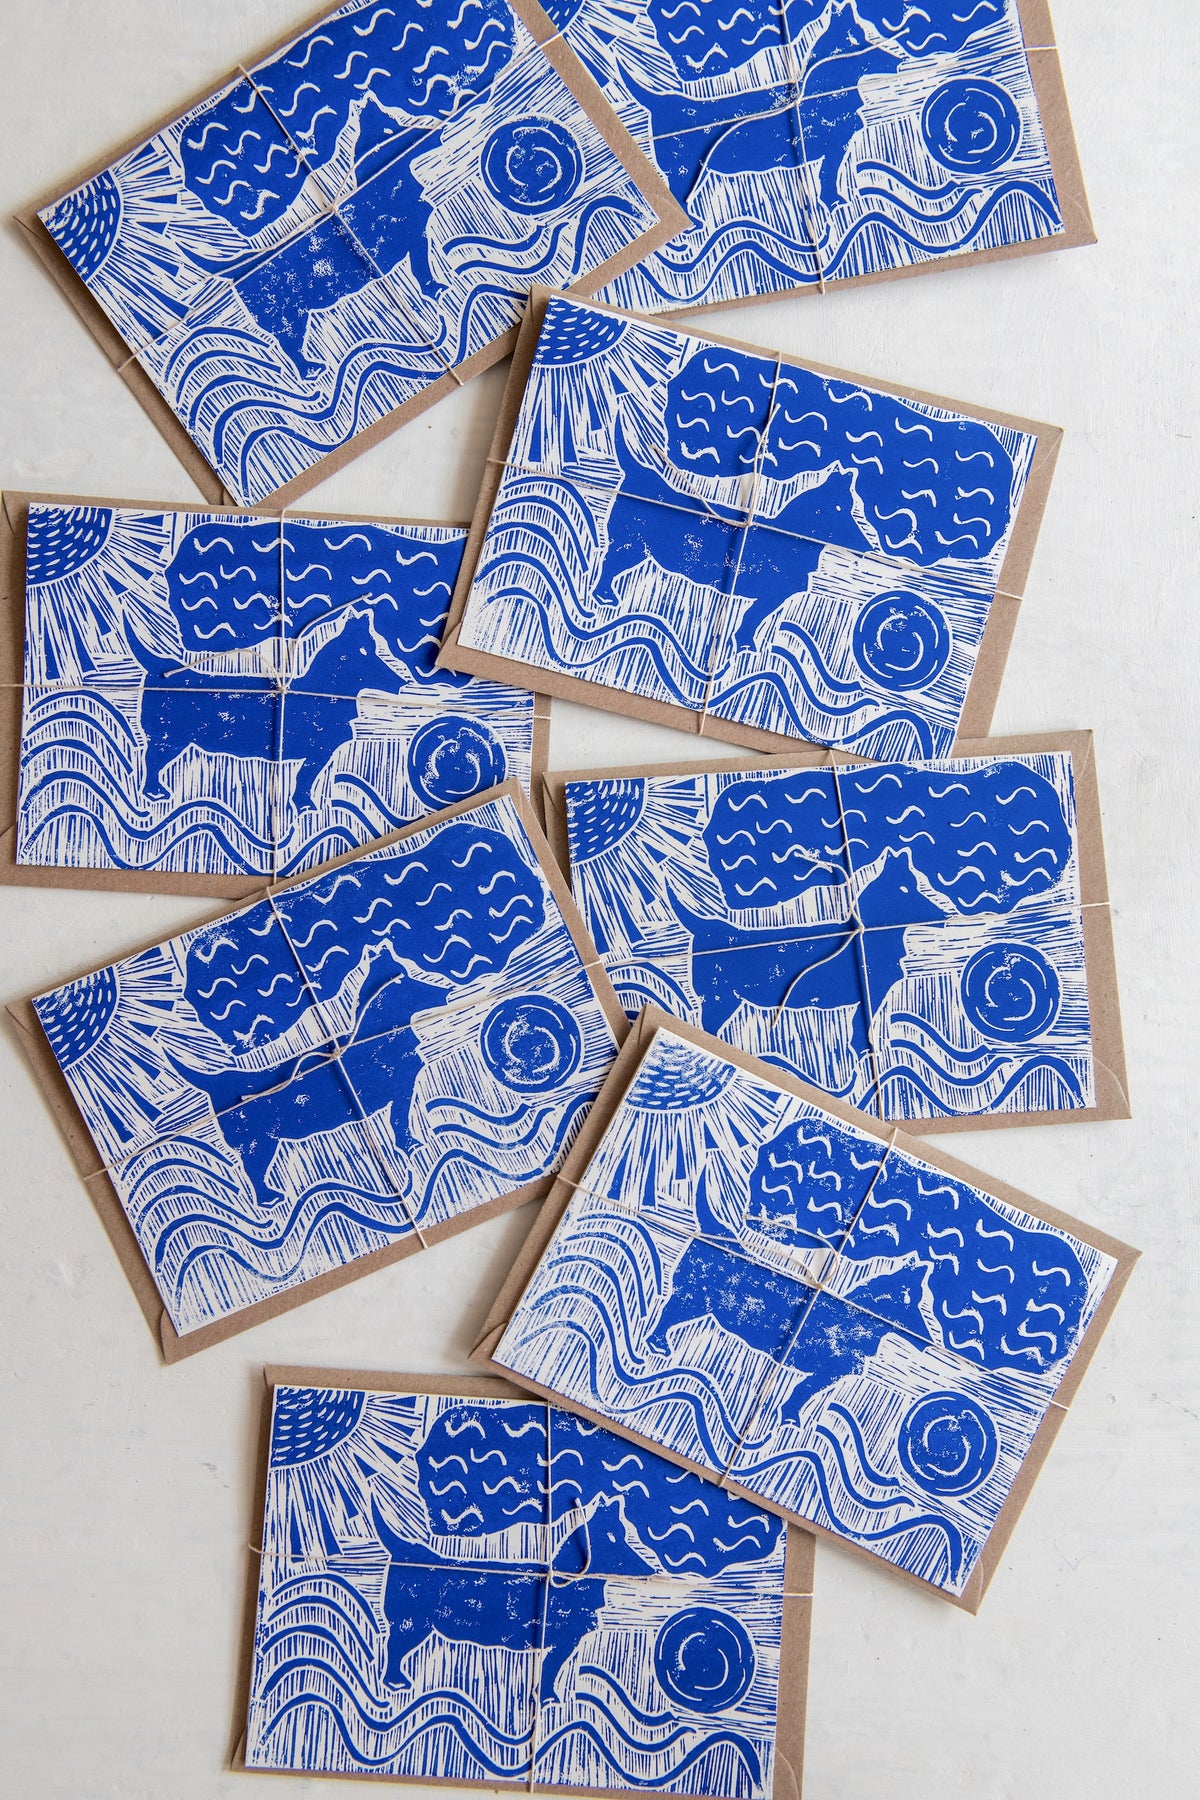 Image of 'Dog and ball' hand block printed greeting cards